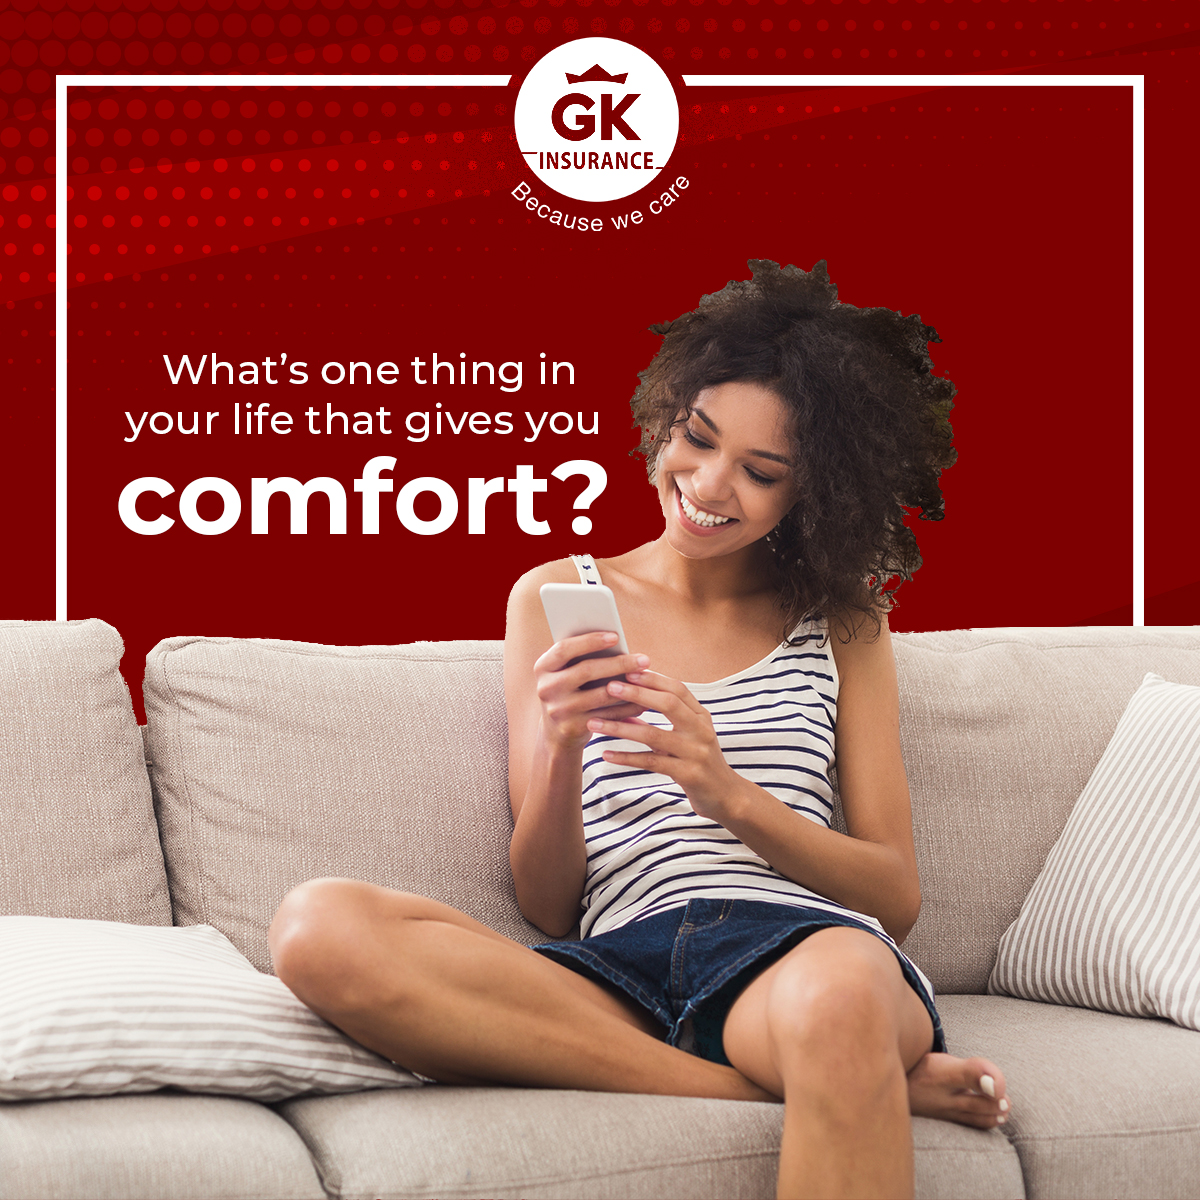 What are 2 things in life that gives you comfort? Knowing your home is your safe zone? The flexibility of owning your vehicle?  Take comfort in knowing that with GKI, both are protected. pic.twitter.com/VXPj4SHyTs